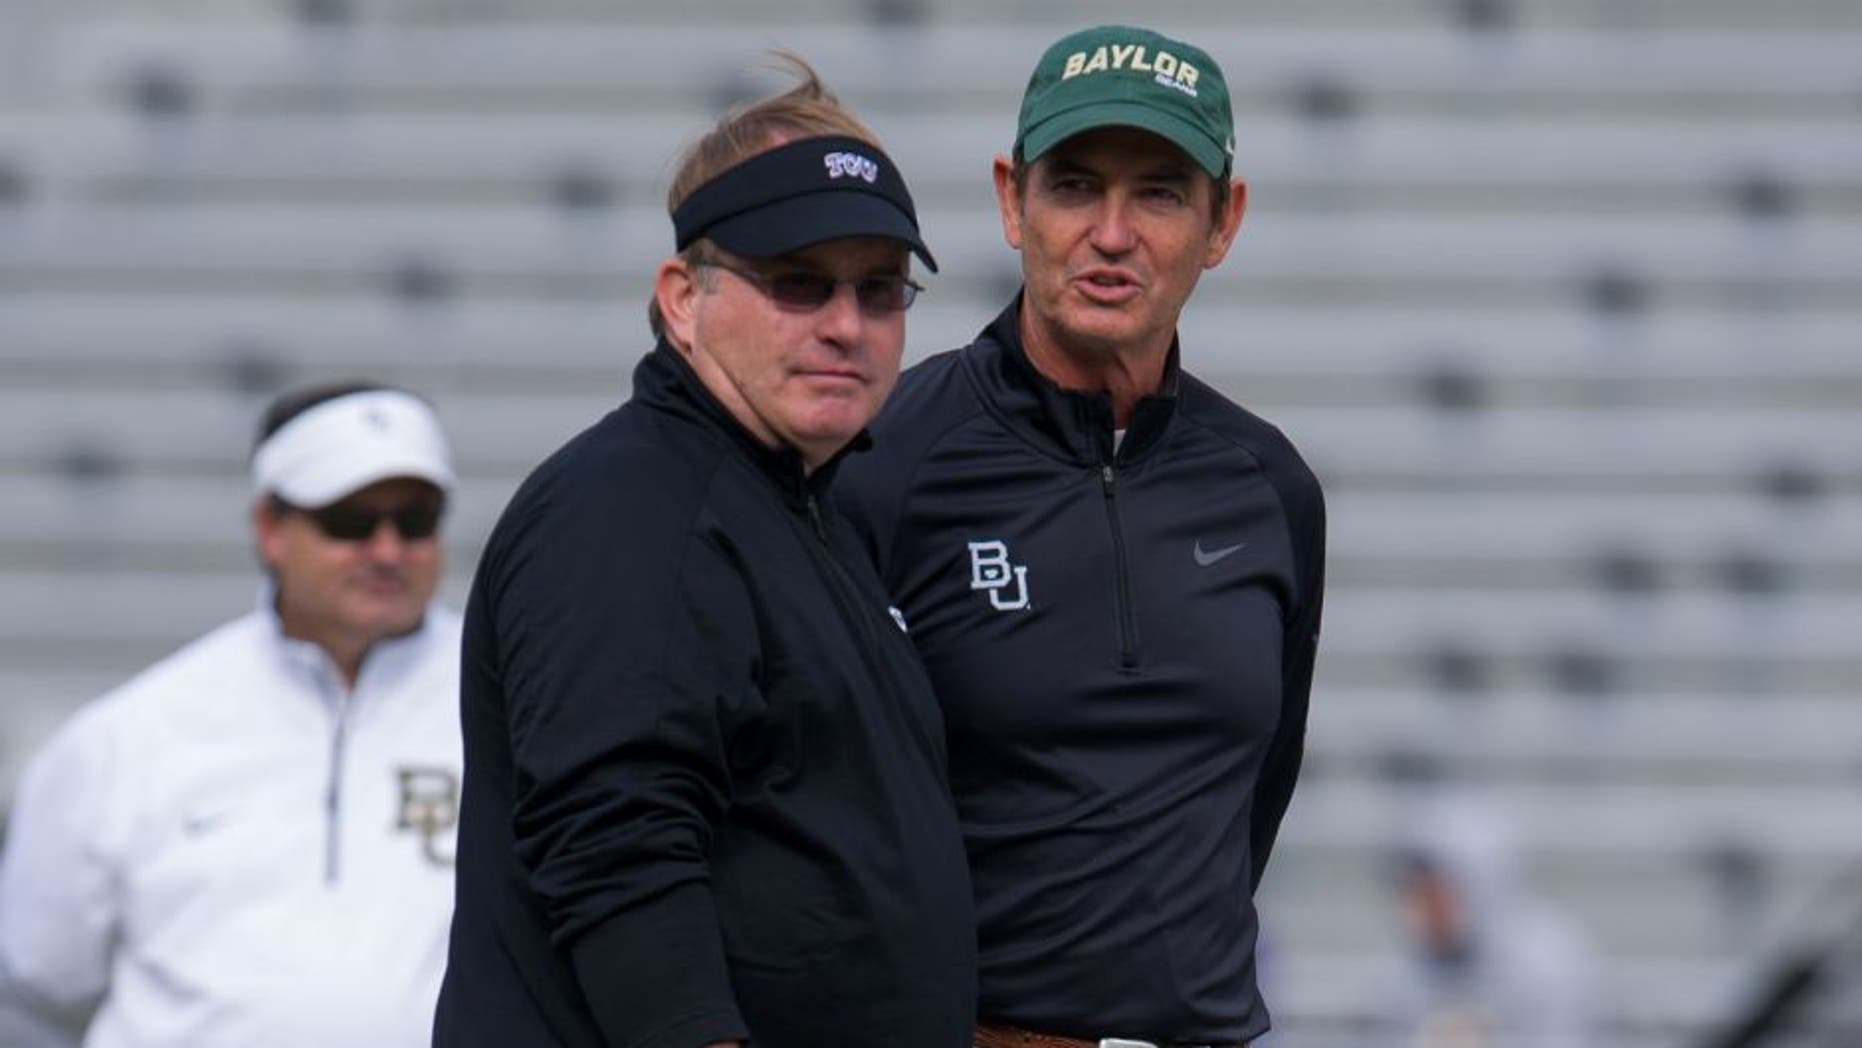 Nov 30, 2013; Fort Worth, TX, USA; TCU Horned Frogs head coach Gary Patterson and Baylor Bears head coach Art Briles before the game at Amon G. Carter Stadium. The Bears defeated the Horned Frogs 41-38. Mandatory Credit: Jerome Miron-USA TODAY Sports